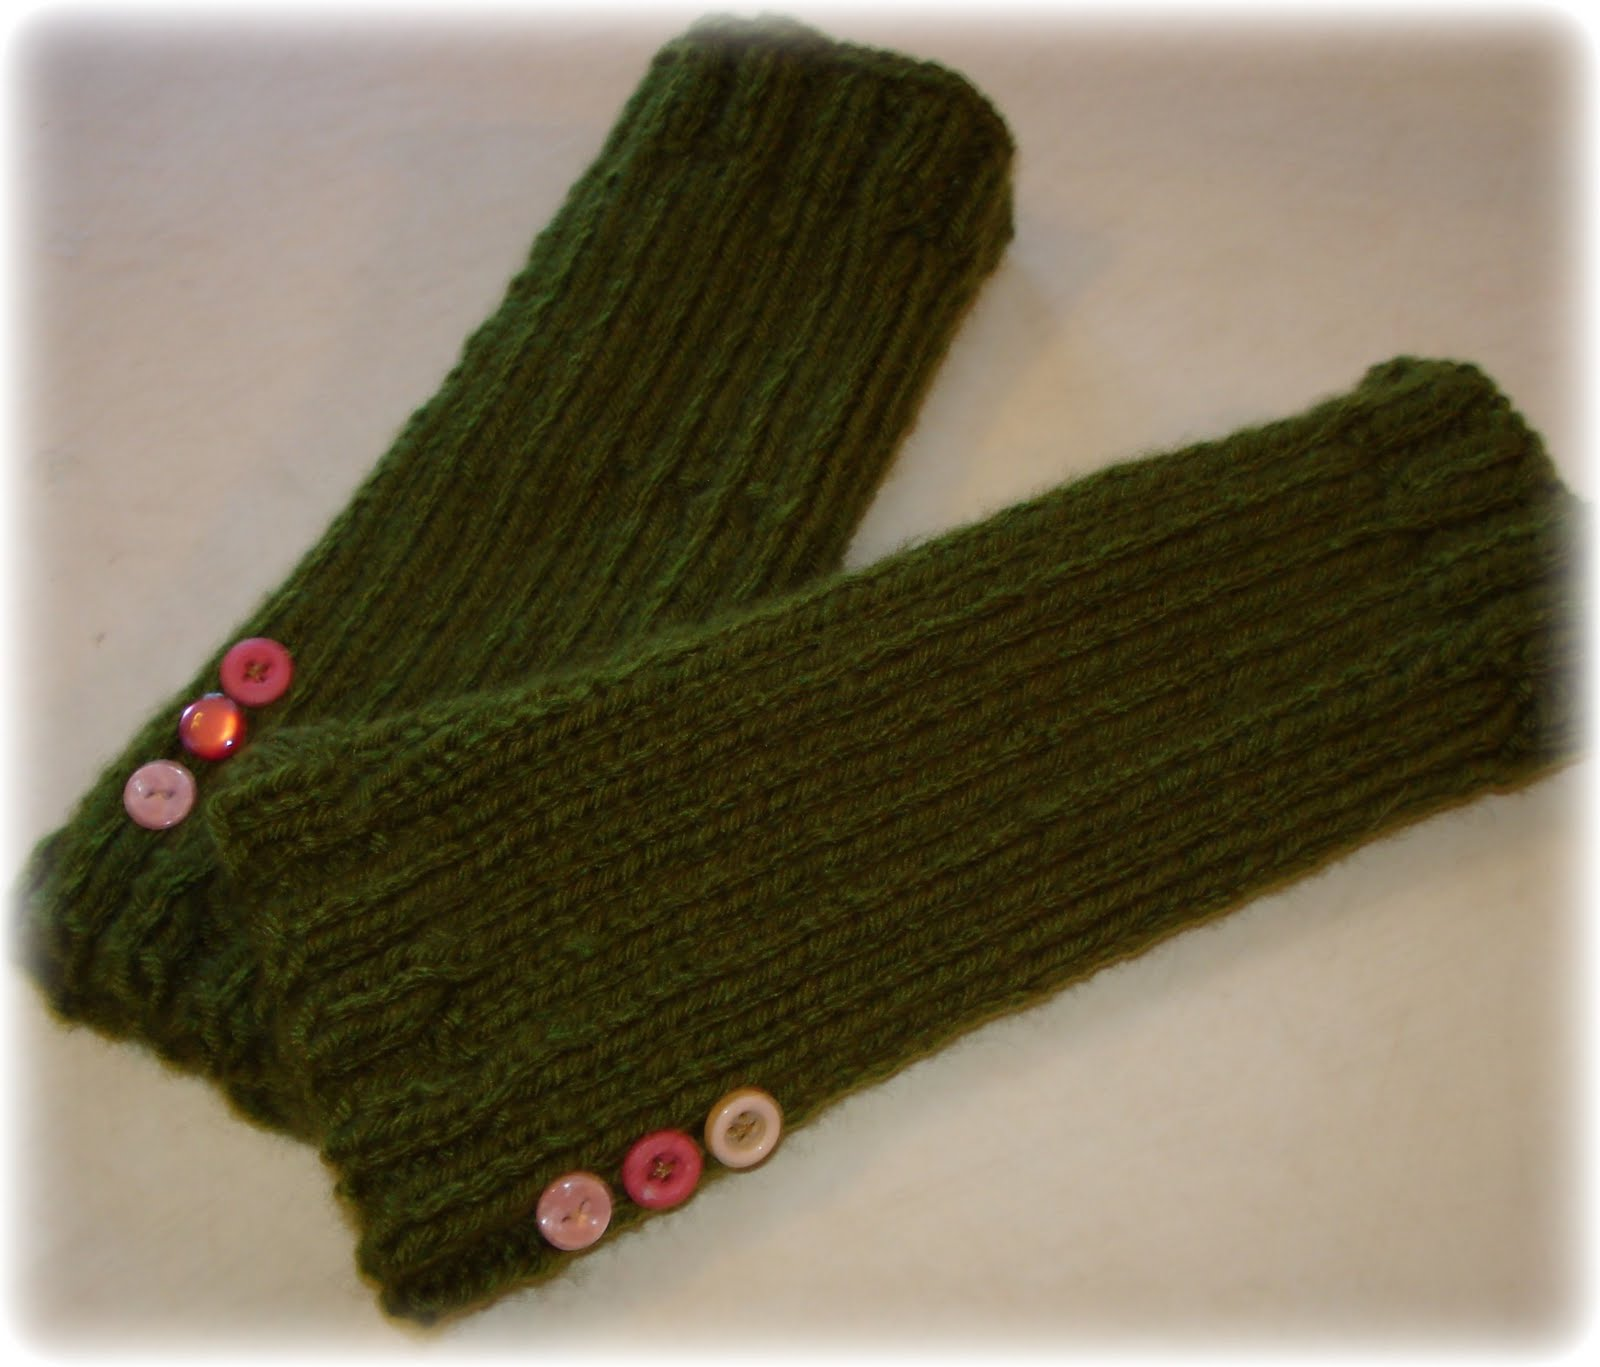 Knitting Pattern Easy Fingerless Gloves : twobutterflies: Super Easy Knit Fingerless Gloves